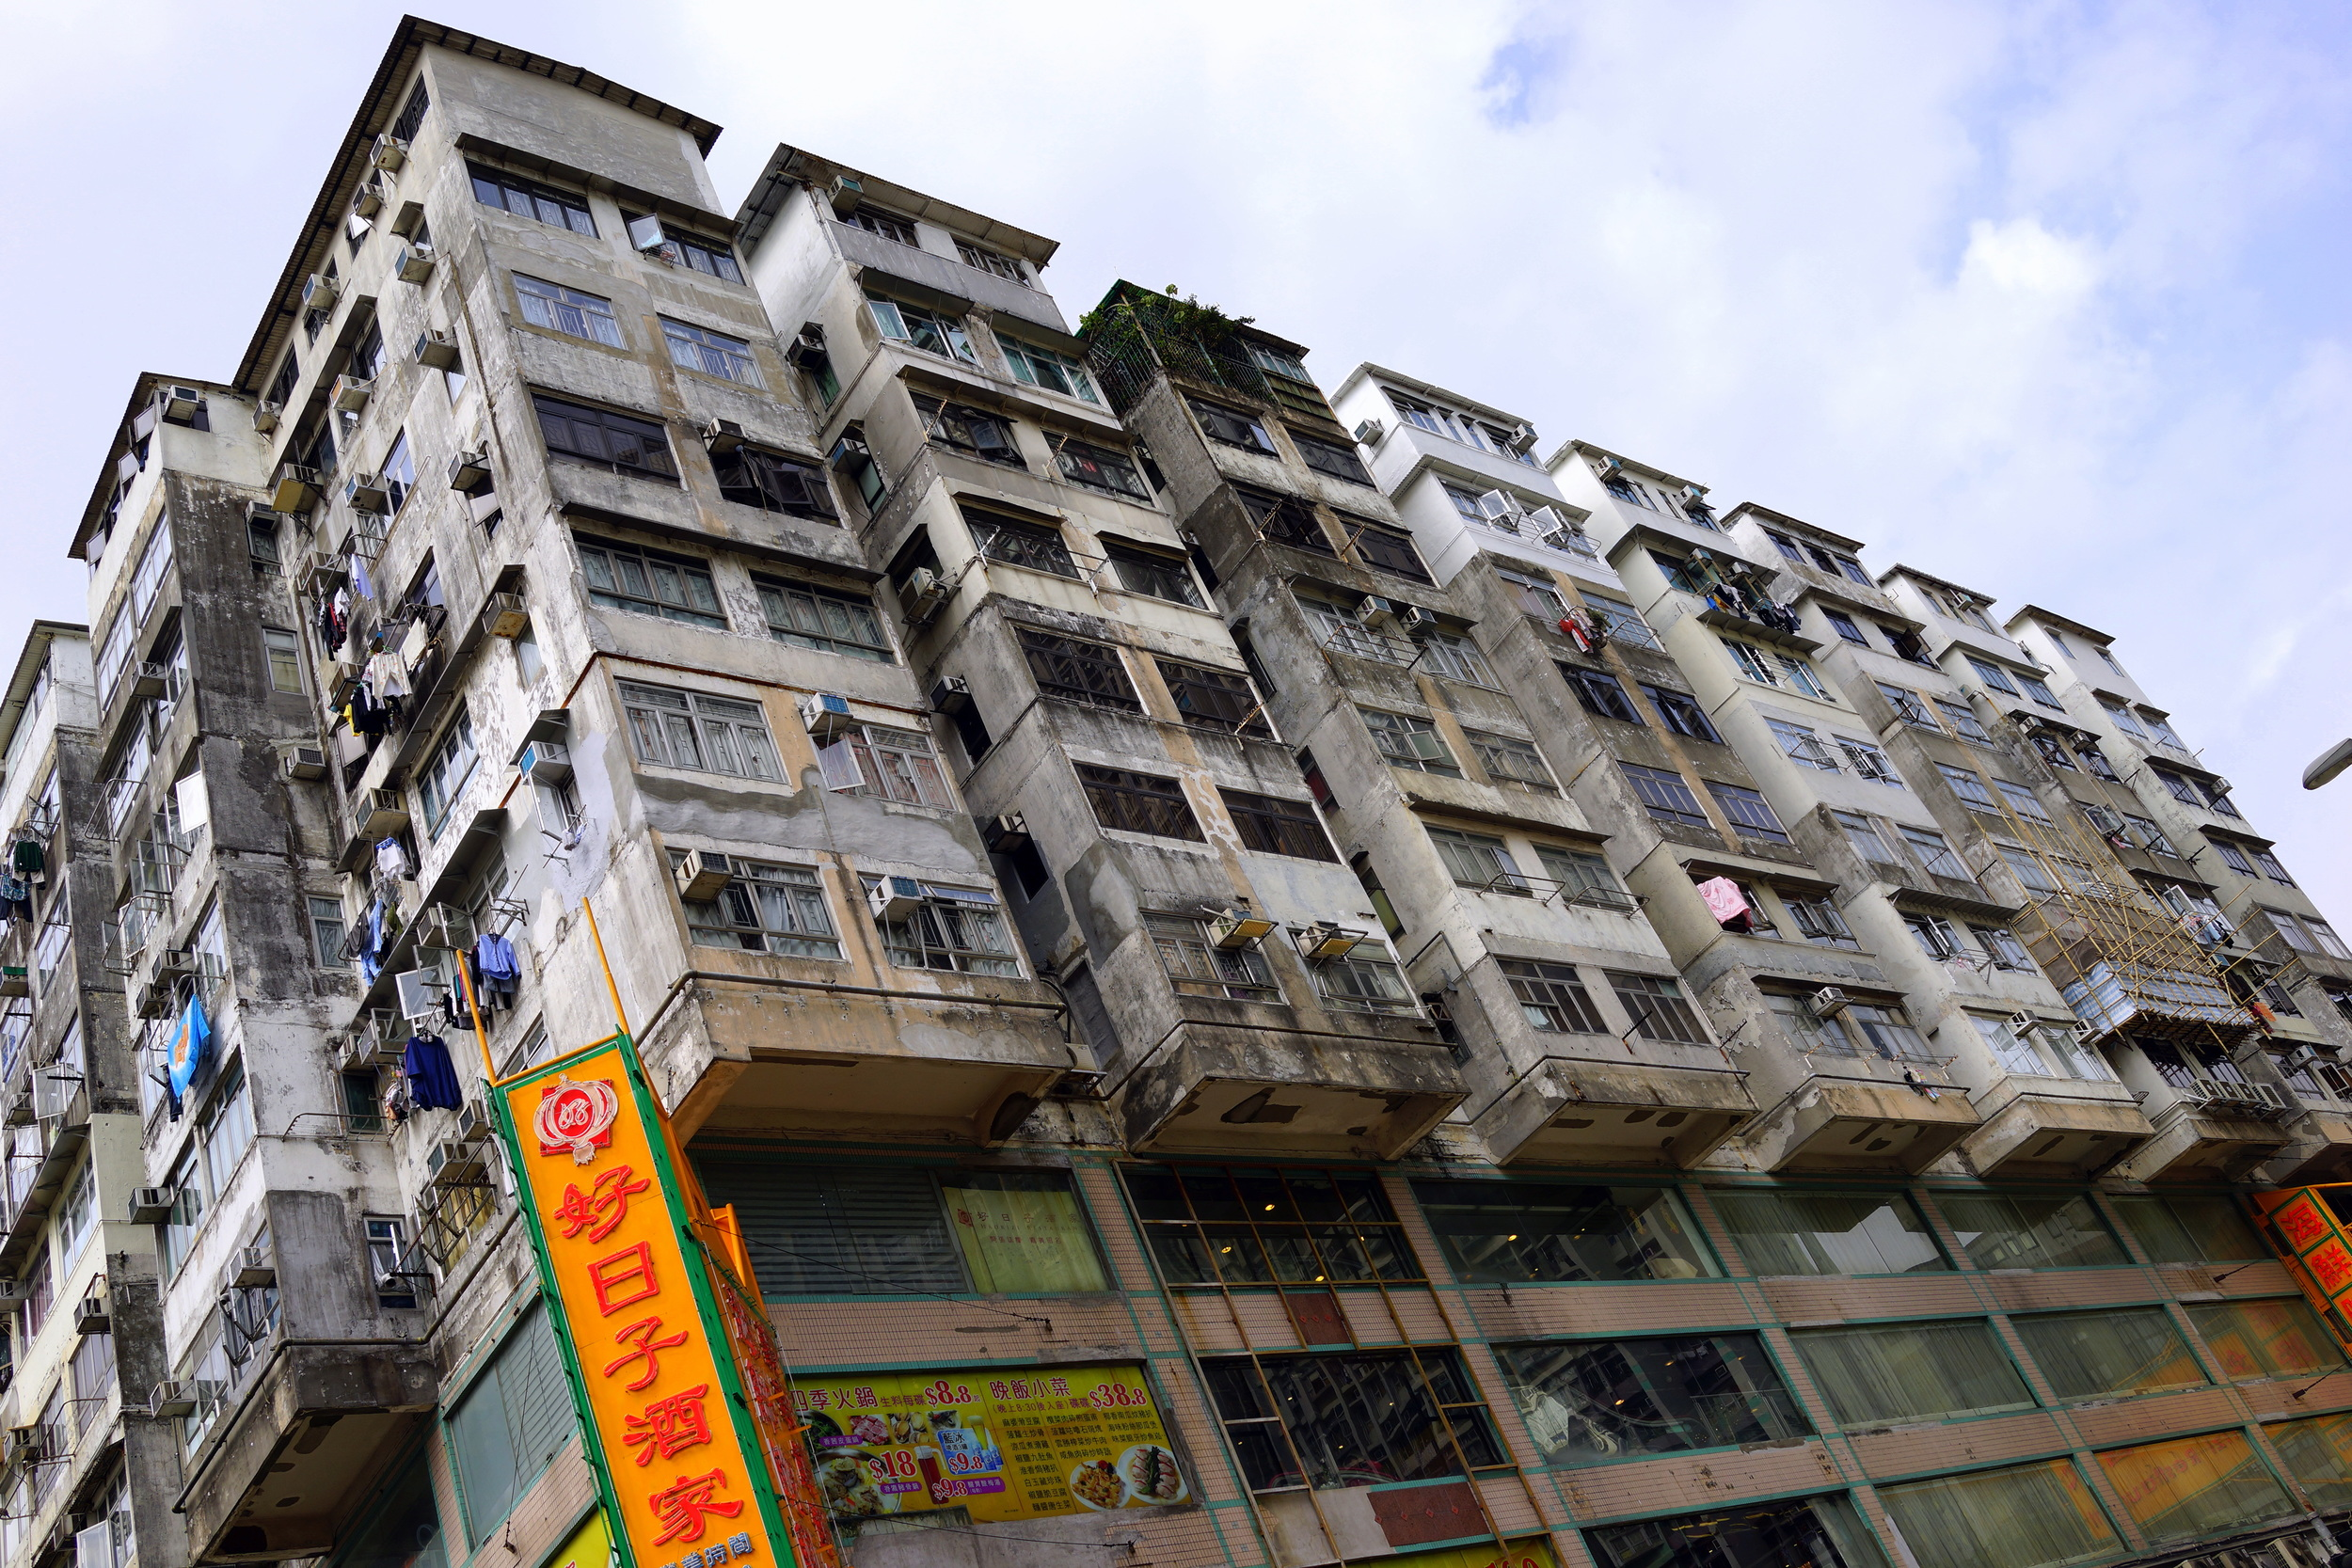 A very old and dodgy building in Shek Kip Mei in Kowloon